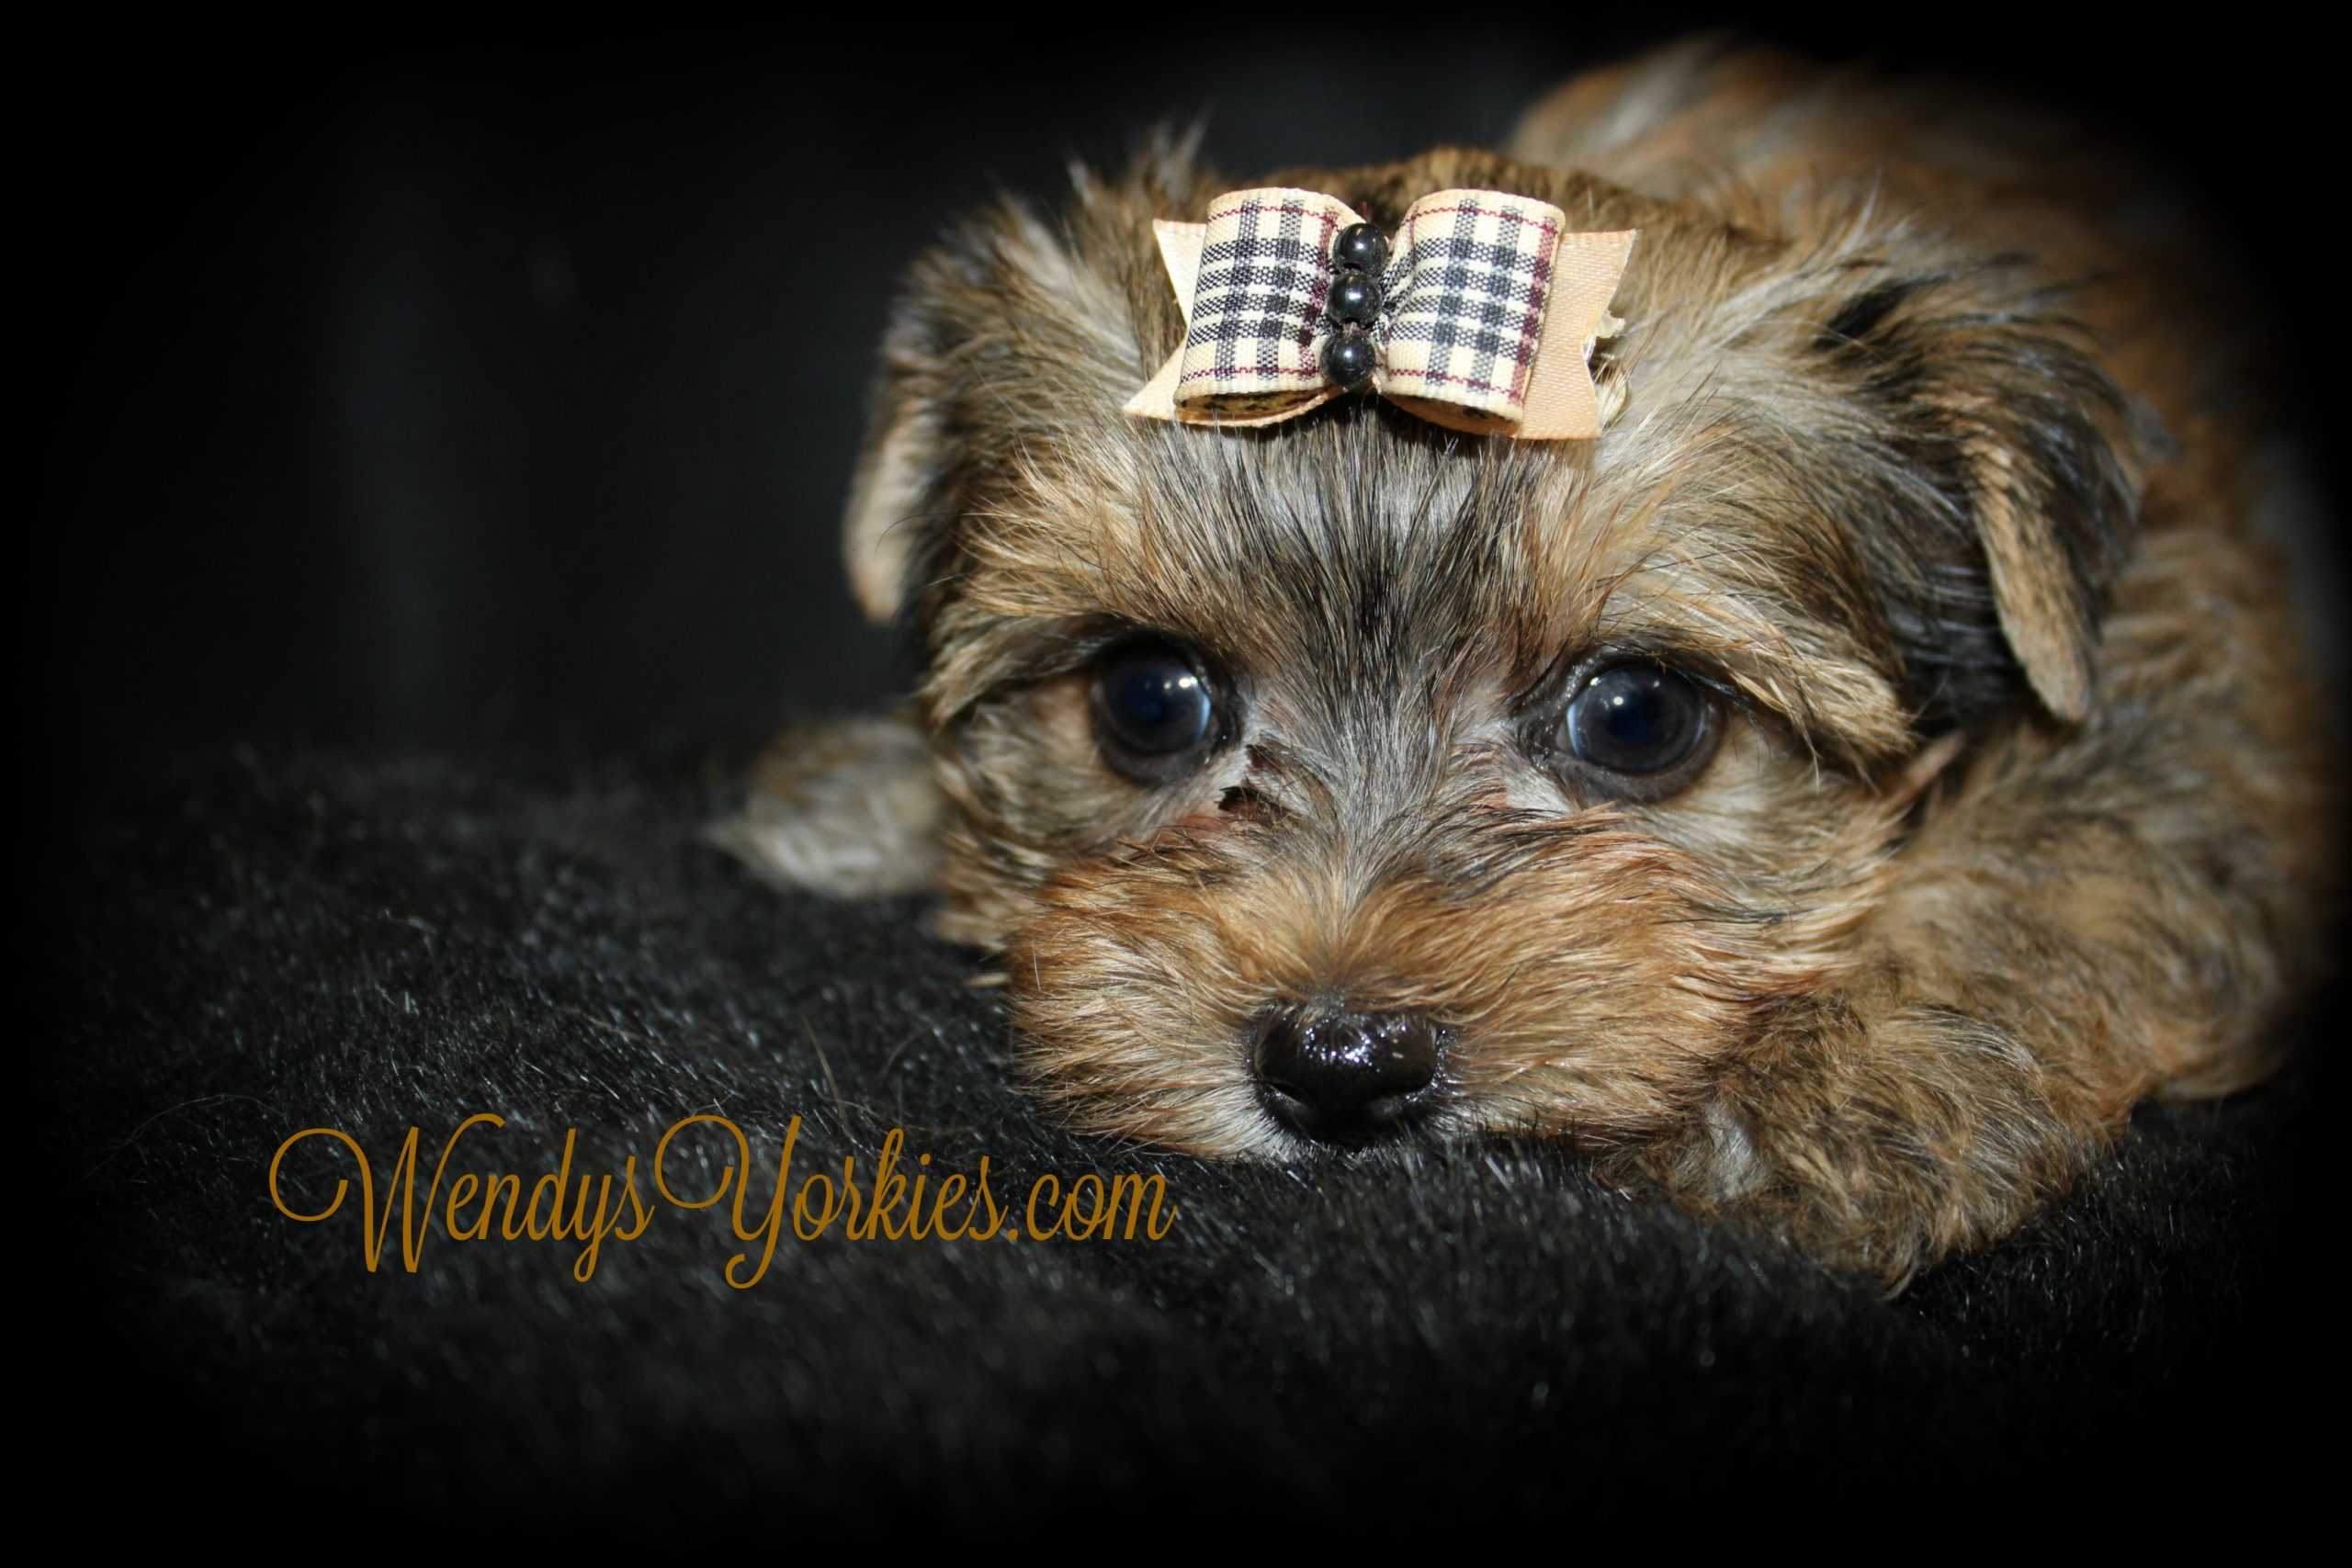 Teacup Yorkie puppy for sale, Creed, WendysYorkies.com